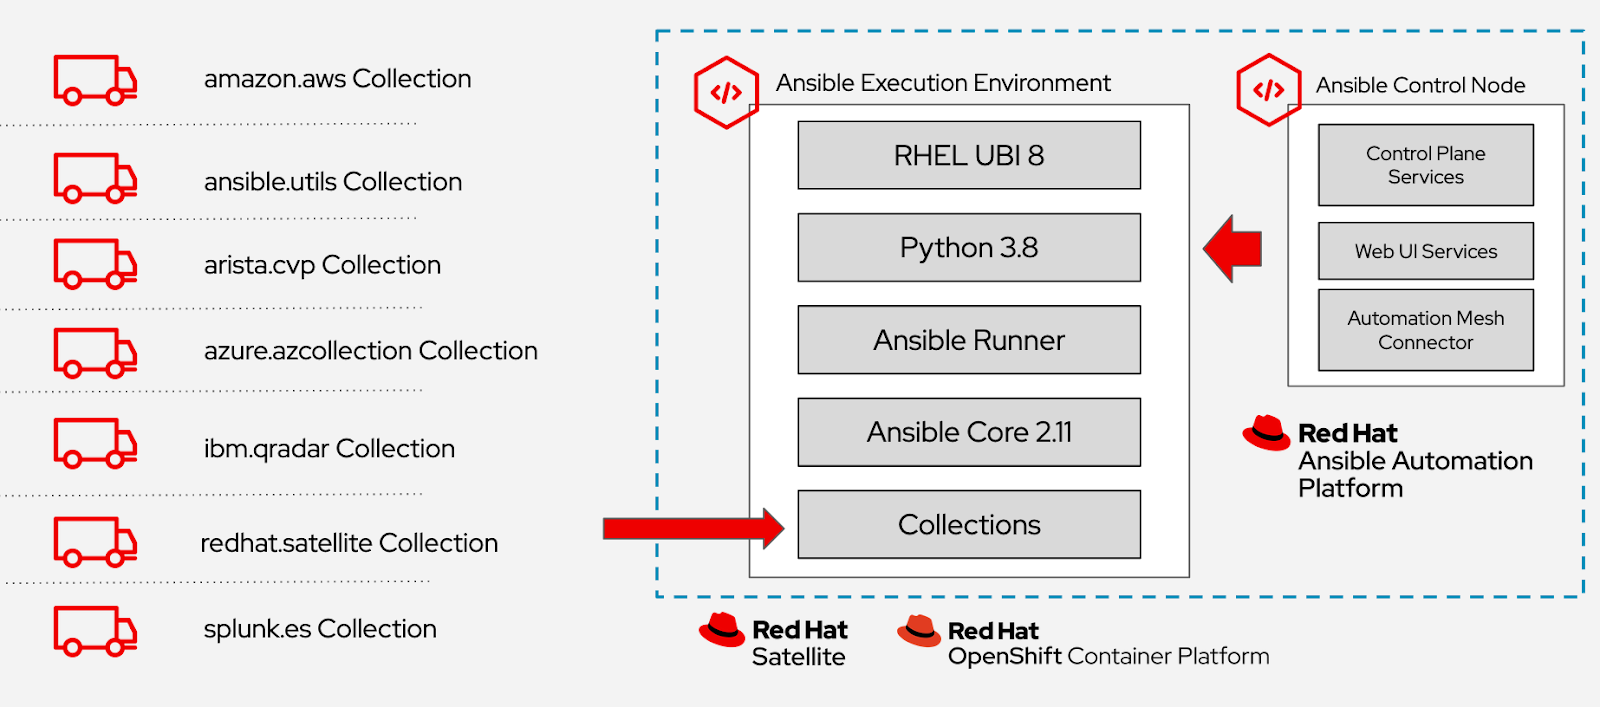 Red Hat Ansible Automation Platform Product Status Update